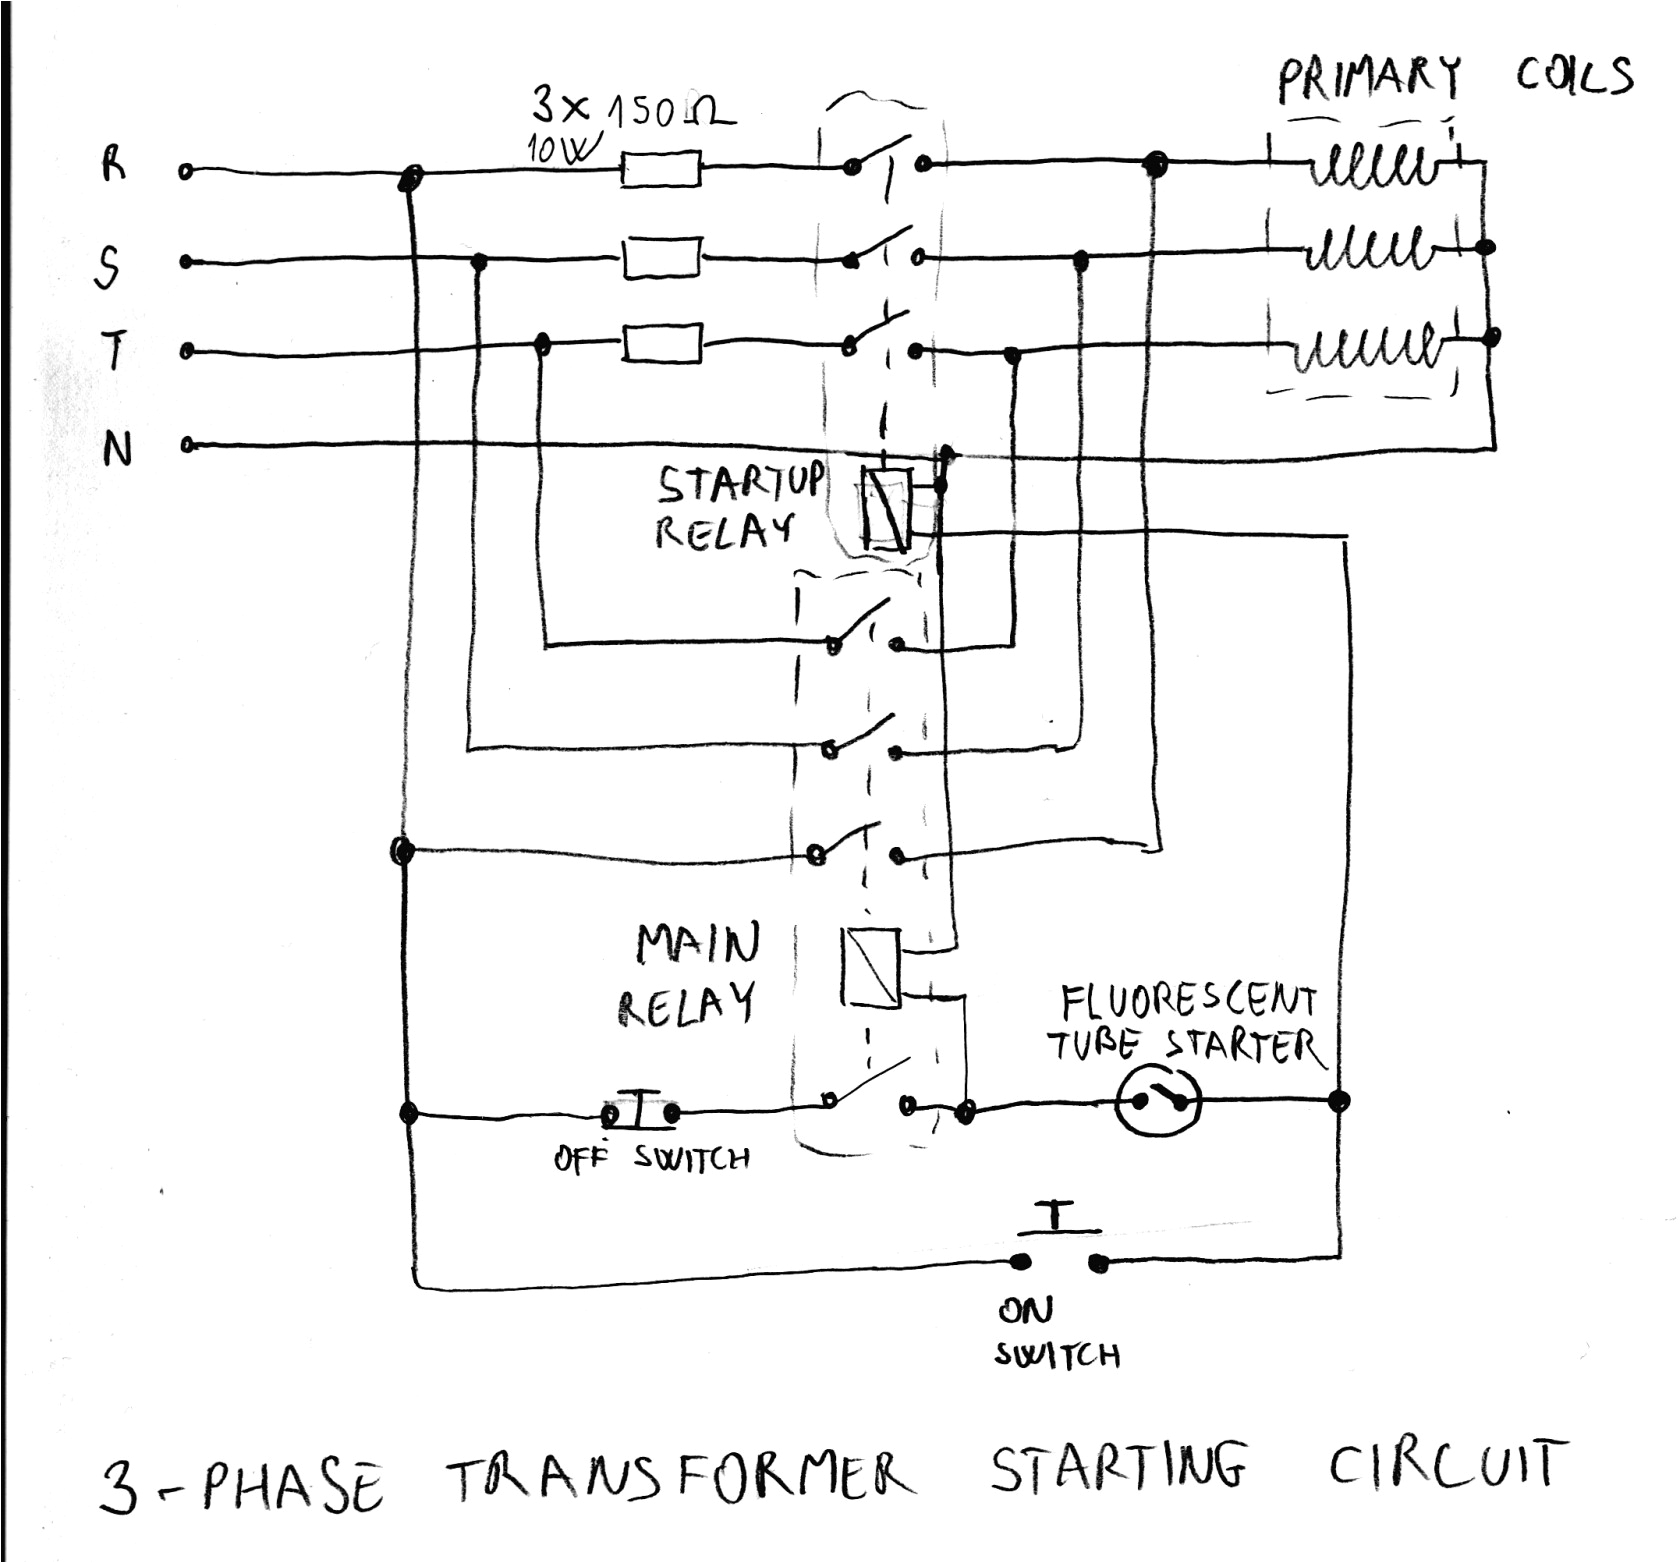 480 volt wiring diagram schematic wiring diagram name 480 volt motor wiring diagram 480 vac wiring